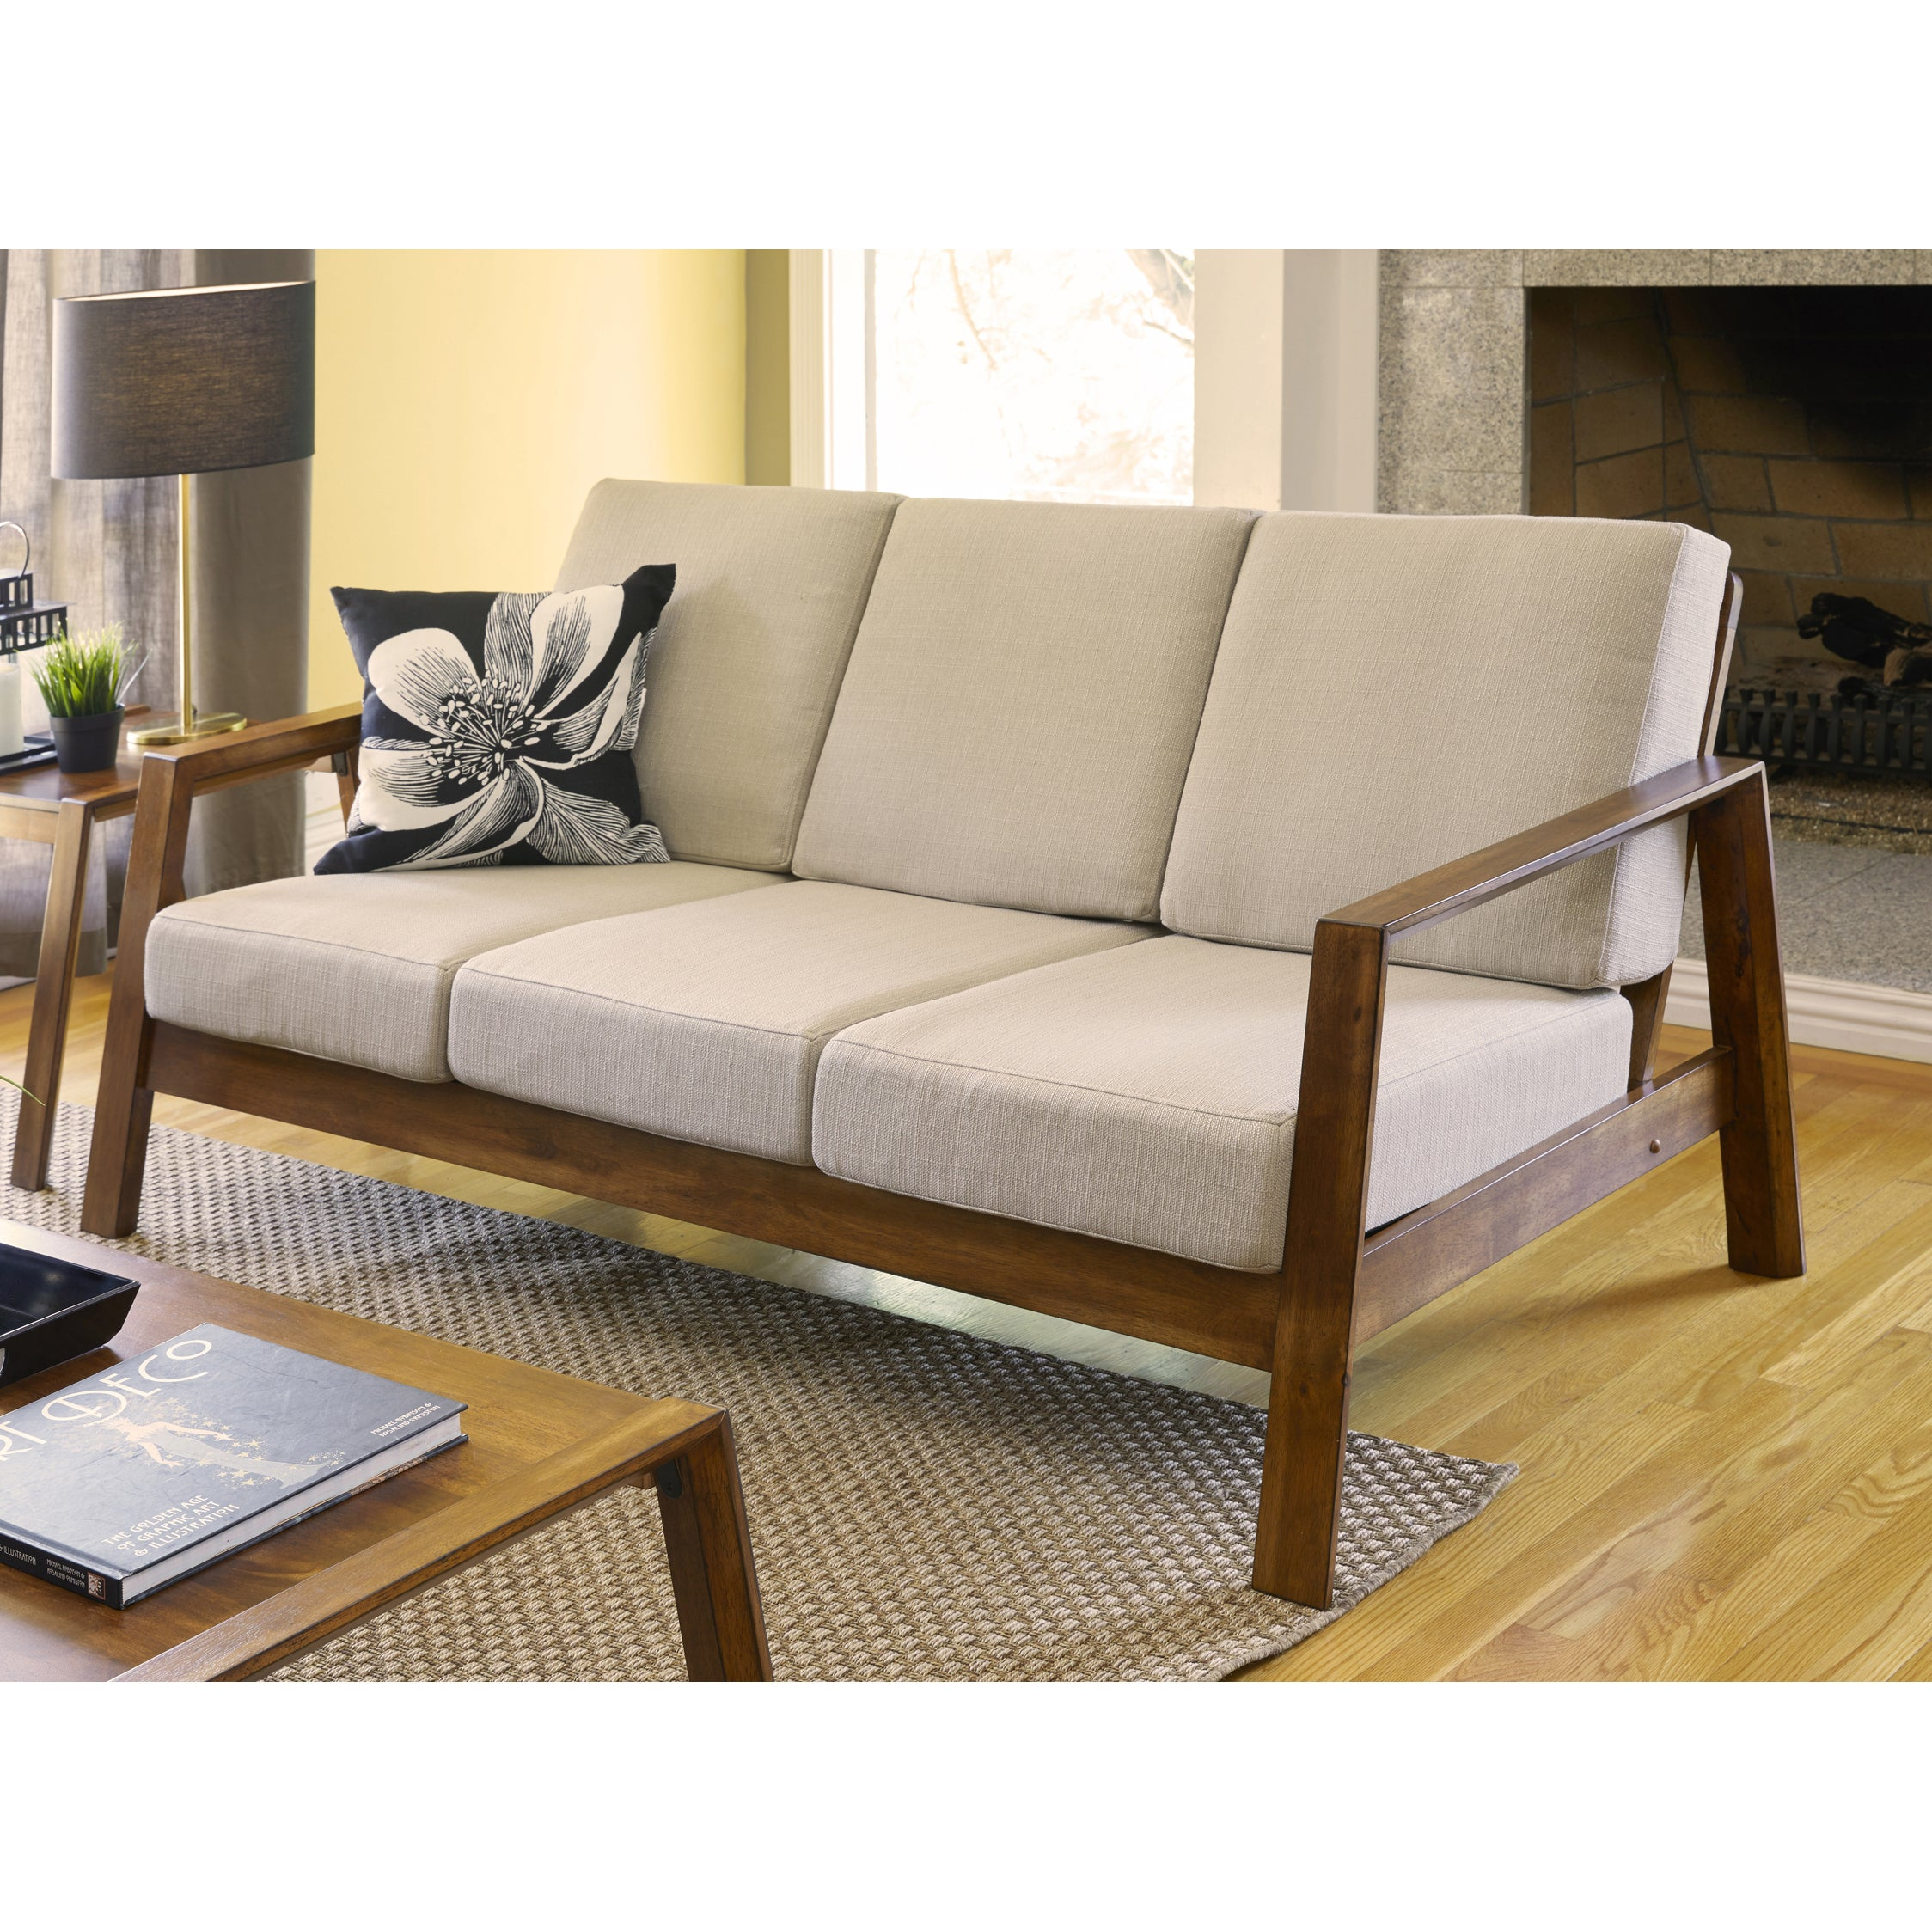 Carson Carrington Horuphav Mid-century Modern Barley Tan Linen Sofa with  Exposed Wood Frame